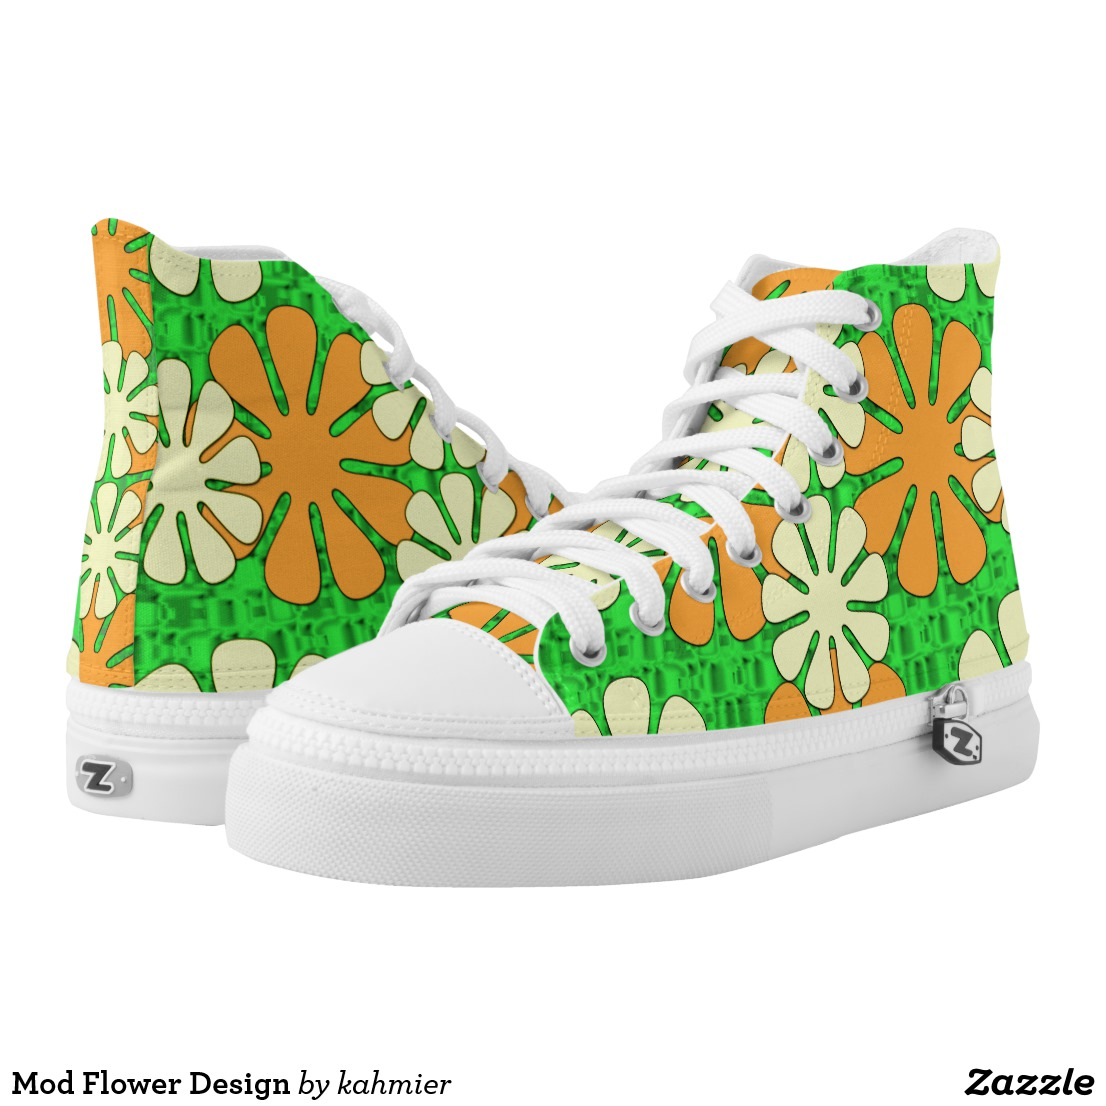 Mod Flower Design High-Top Sneakers